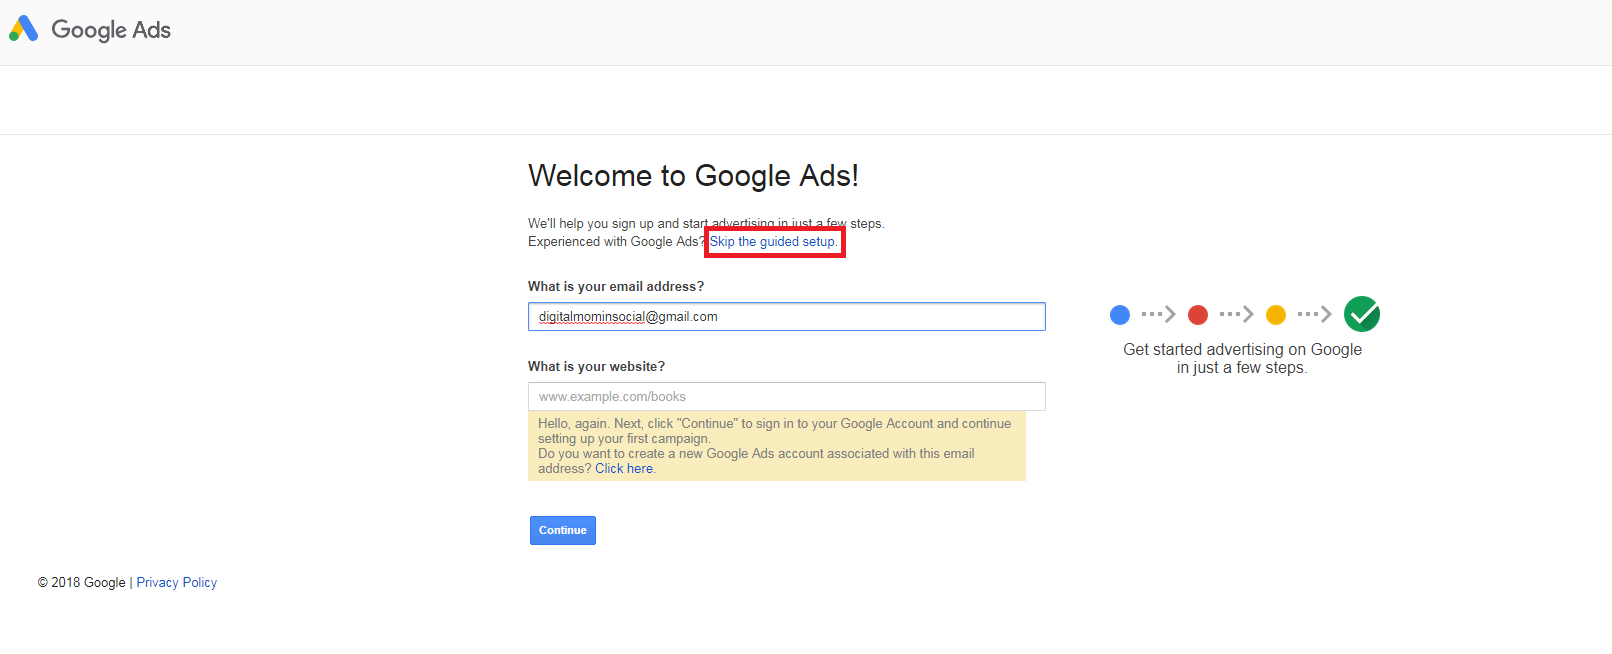 How to setup Google Adwords Account in 2 minutes - Quora